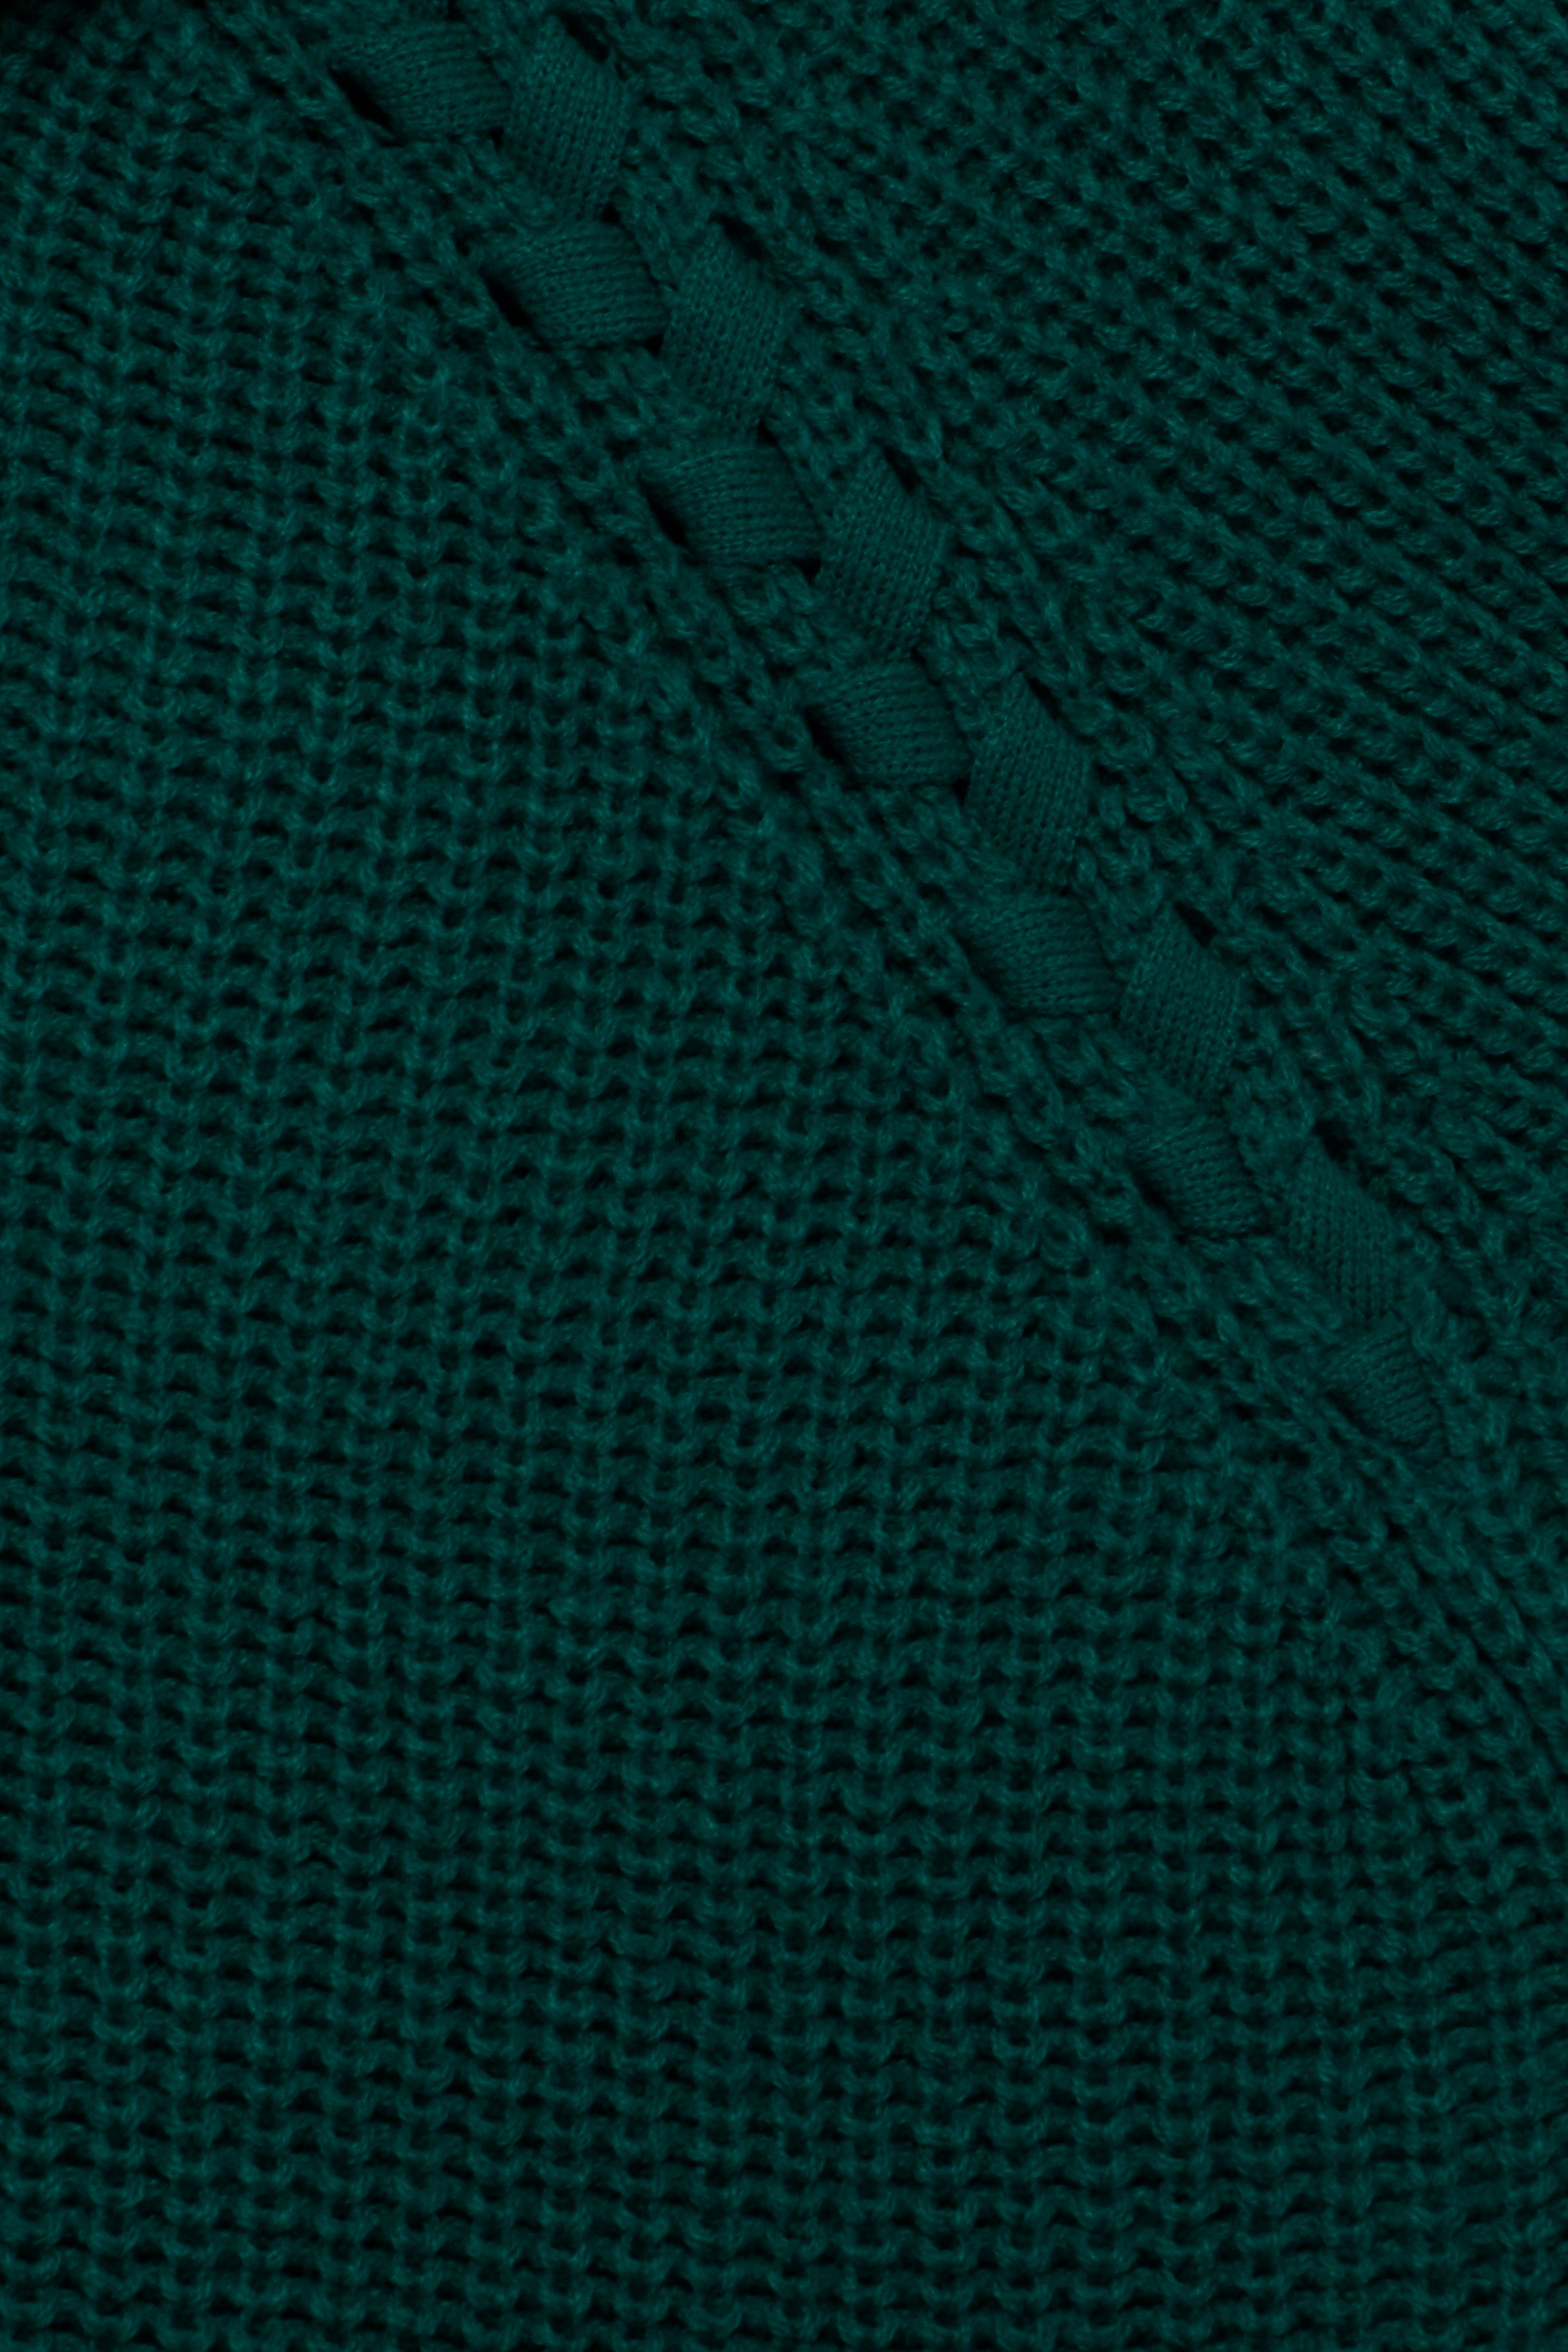 Majestic Green Knitted pullover from b.young – Buy Majestic Green Knitted pullover from size XS-XXL here